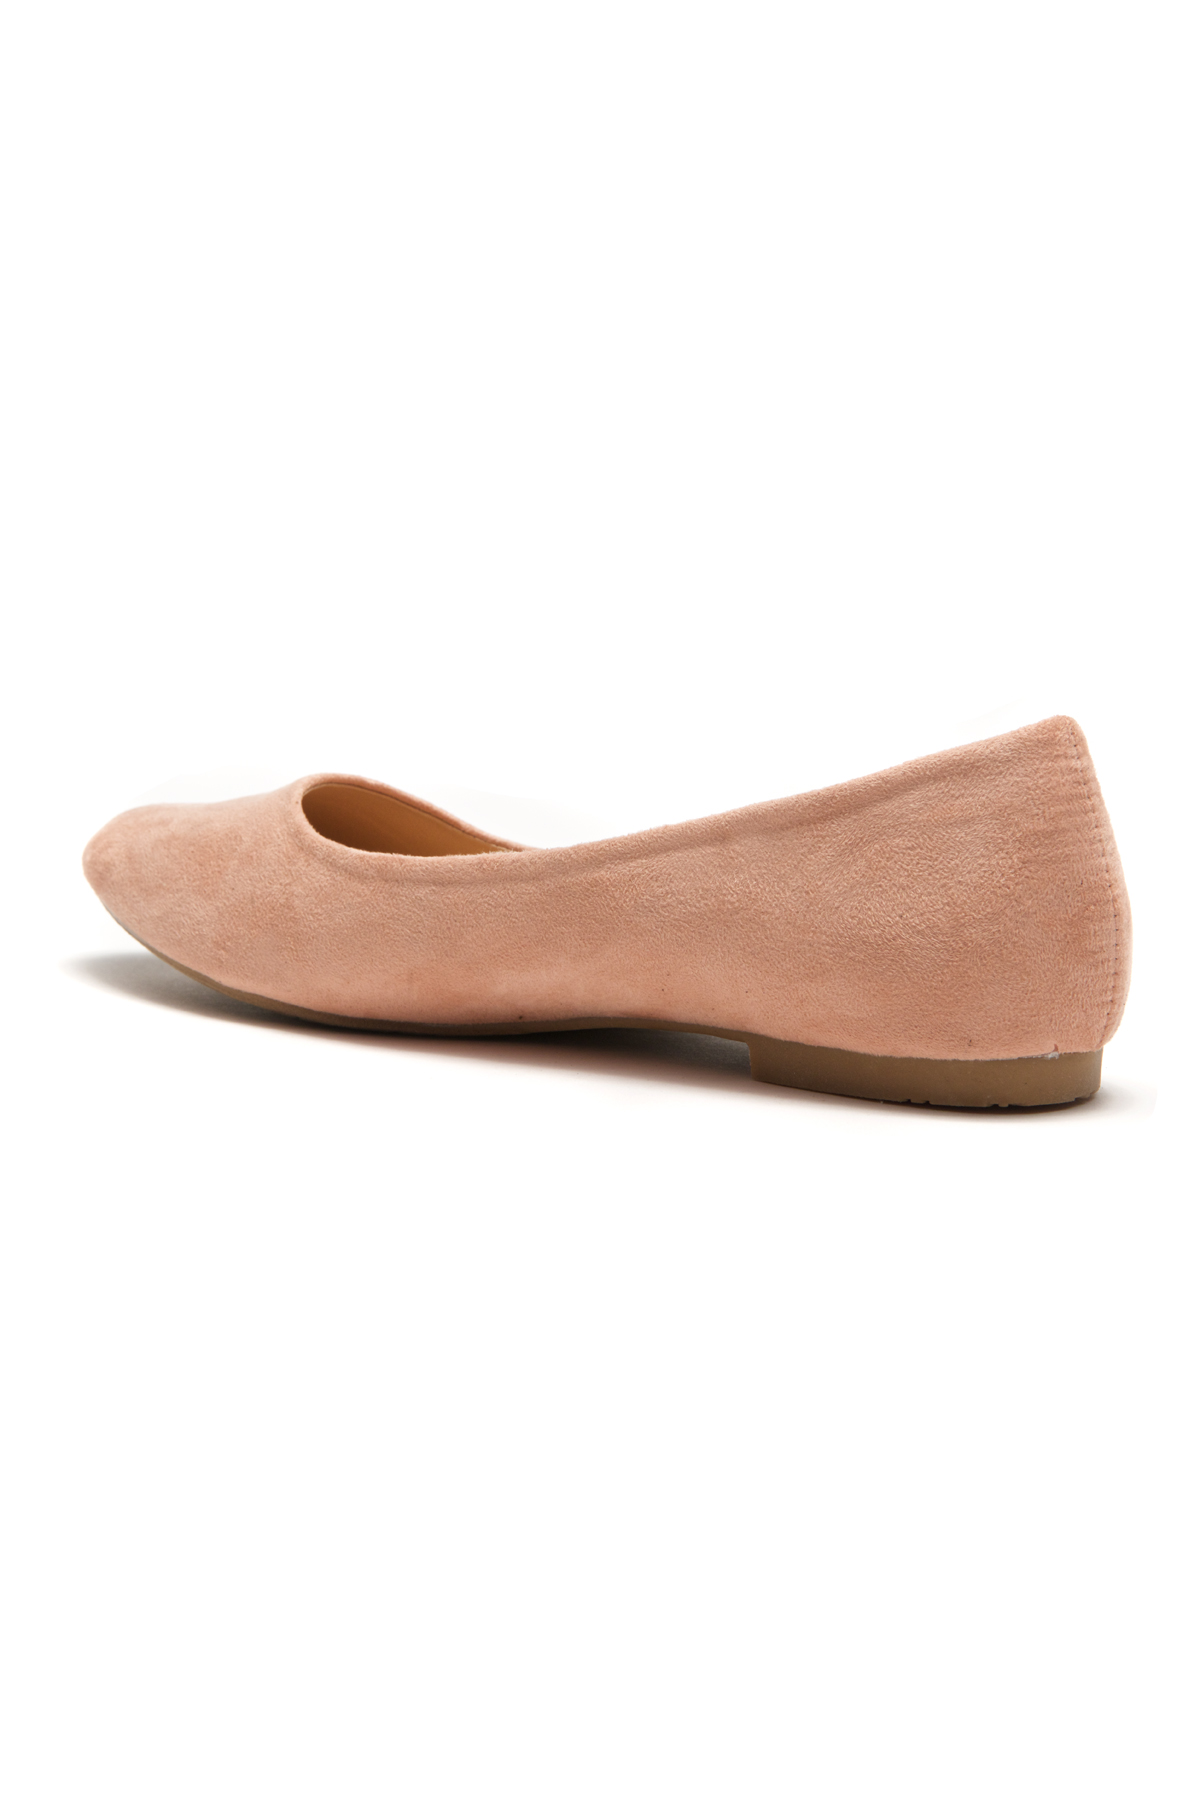 4b7ce2d2b70b ... HerStyle Women s Manmade Nstaffno Simple Faux Suede Pointy Toe Flats -  Pink